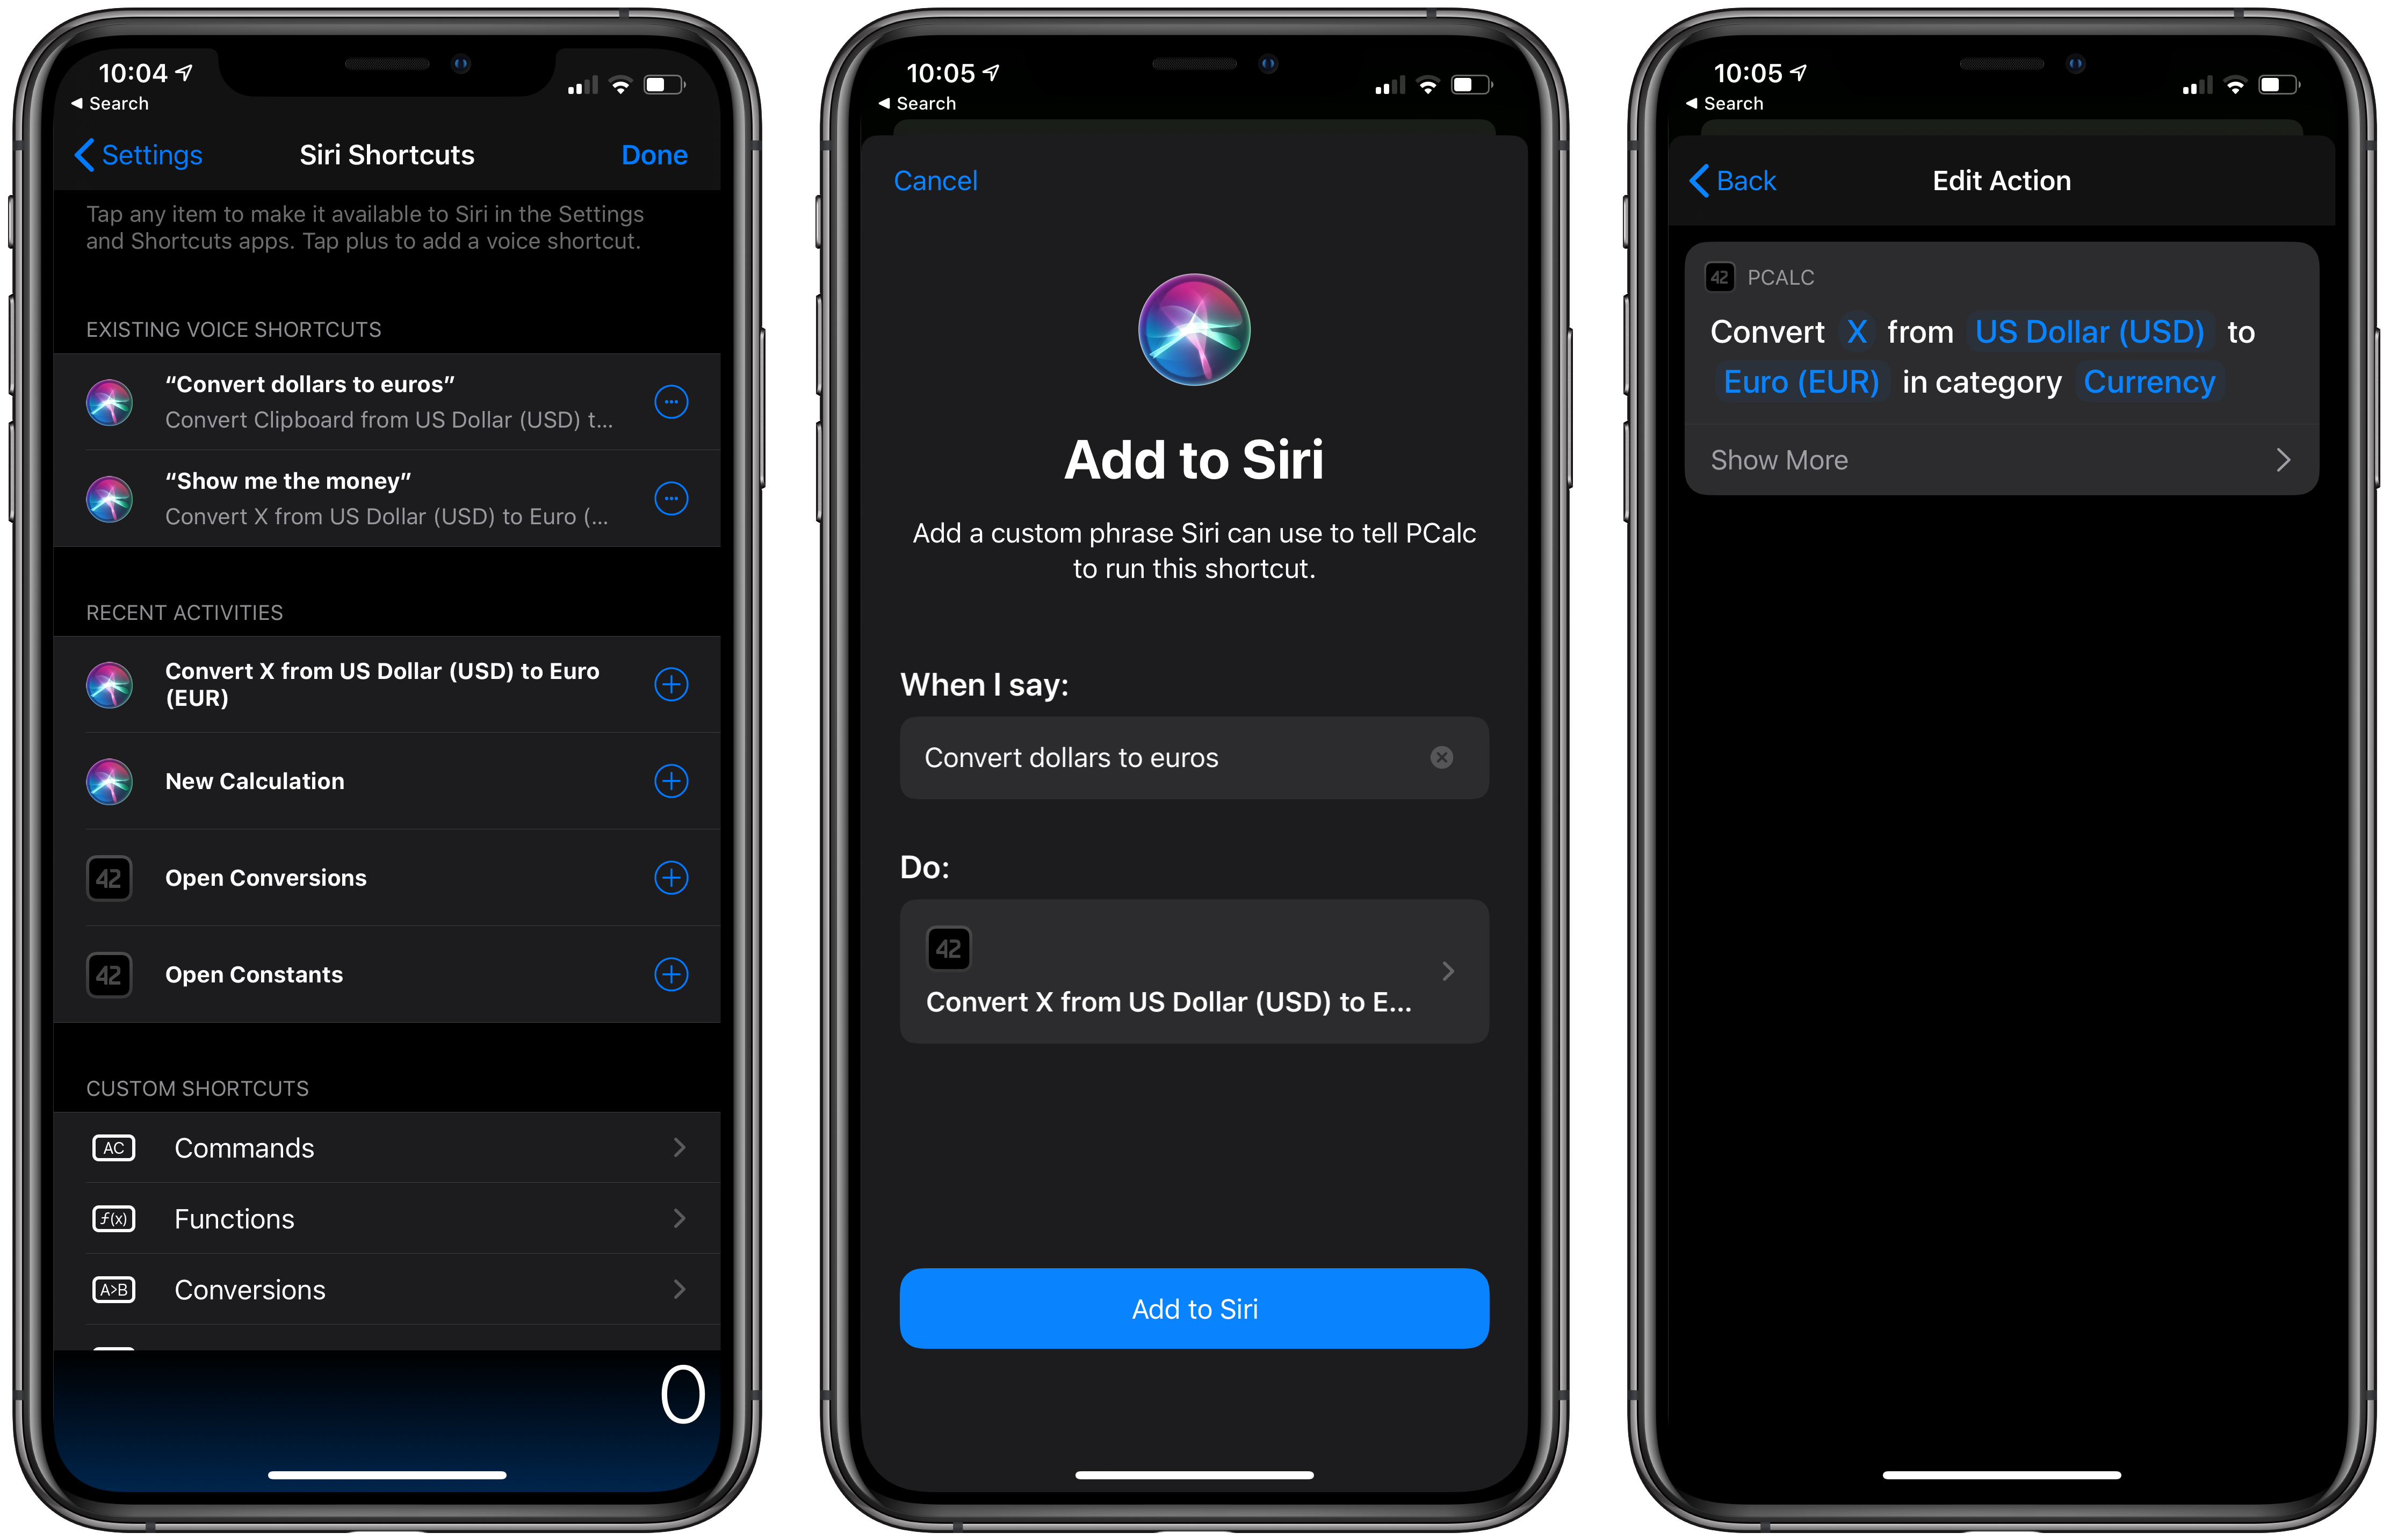 Actions and Siri shortcuts available from within PCalc.